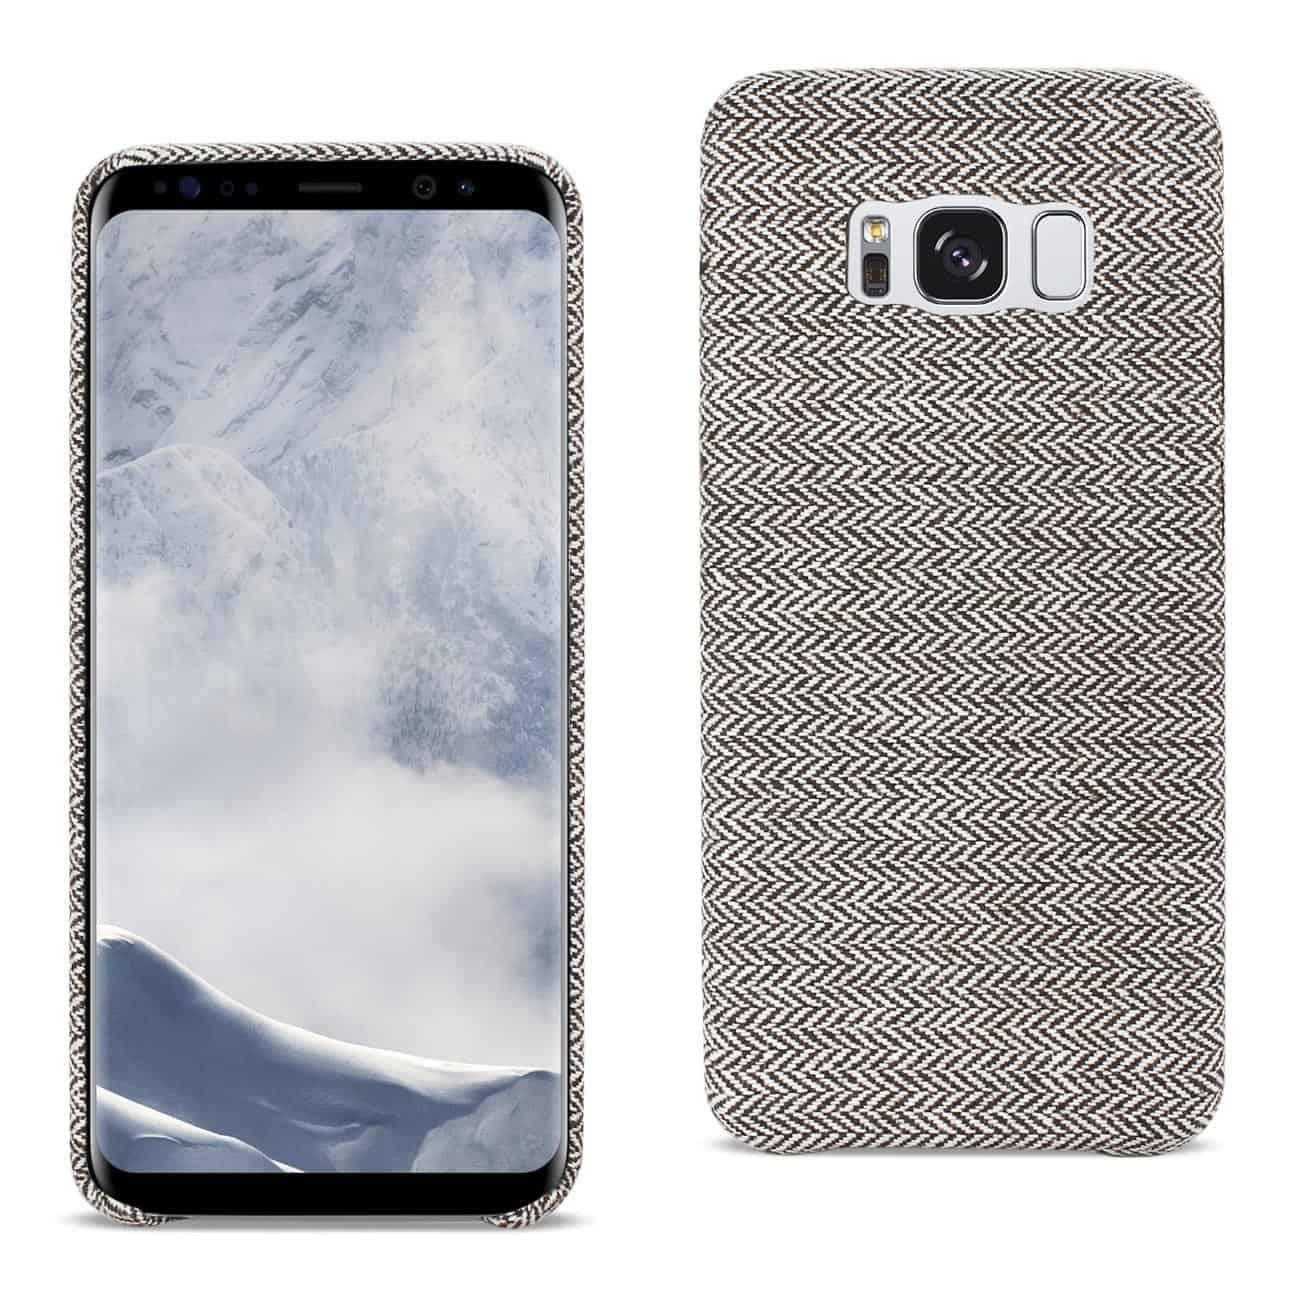 SAMSUNG GALAXY S8 HERRINGBONE FABRIC IN DARK GRAY